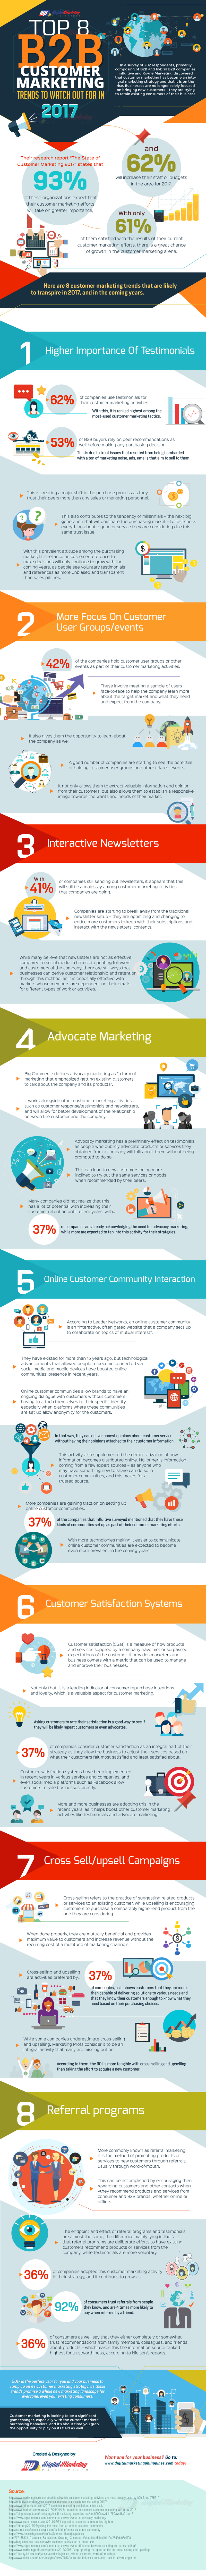 B2B Customer Marketing Trends